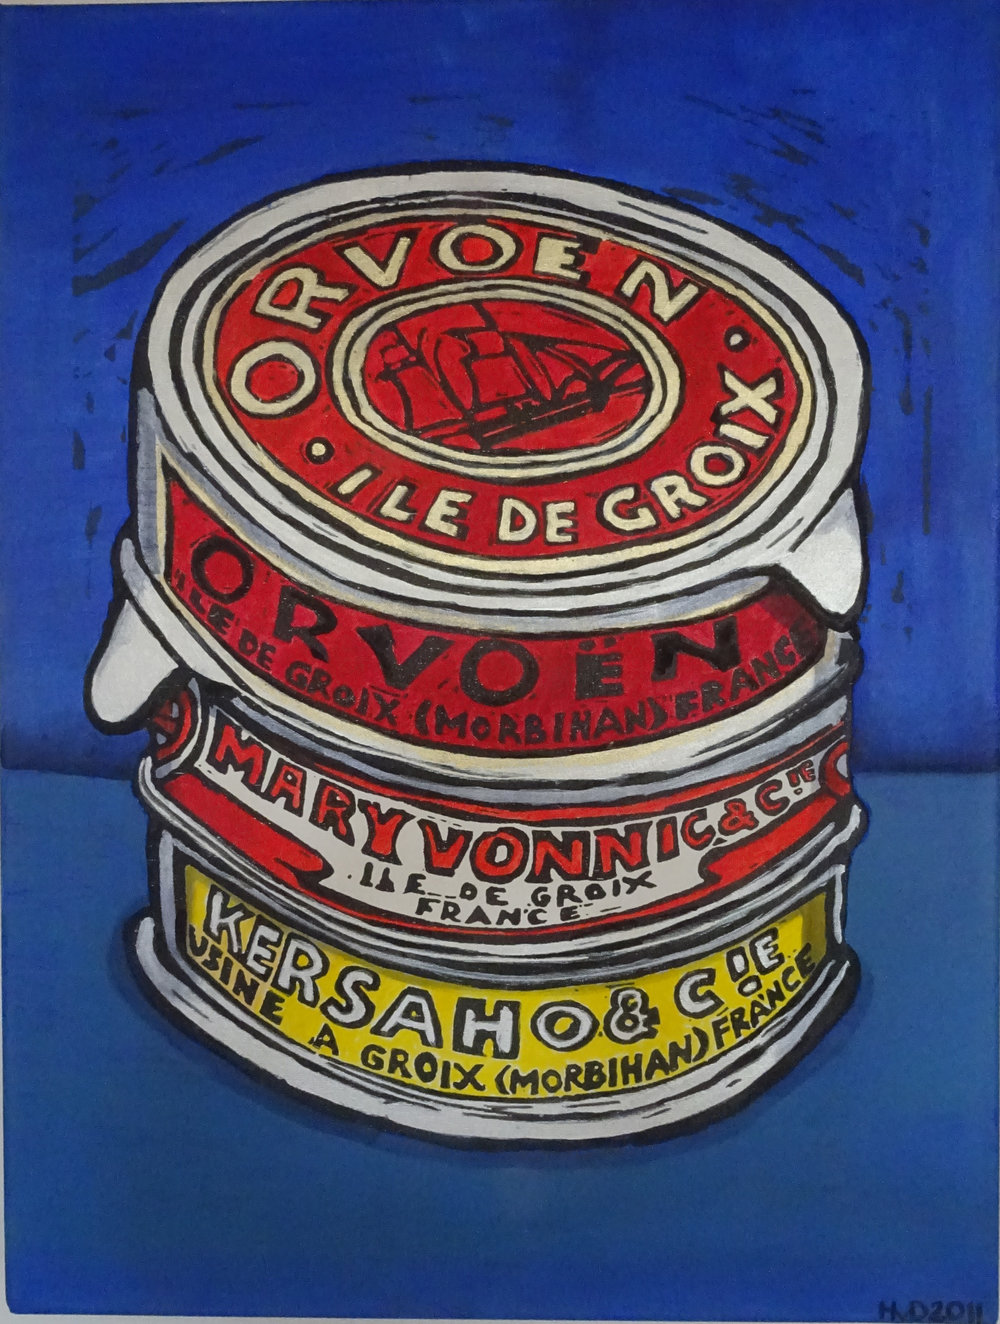 Groix tuna cans, acrylic on canvas 80 x 50 cm